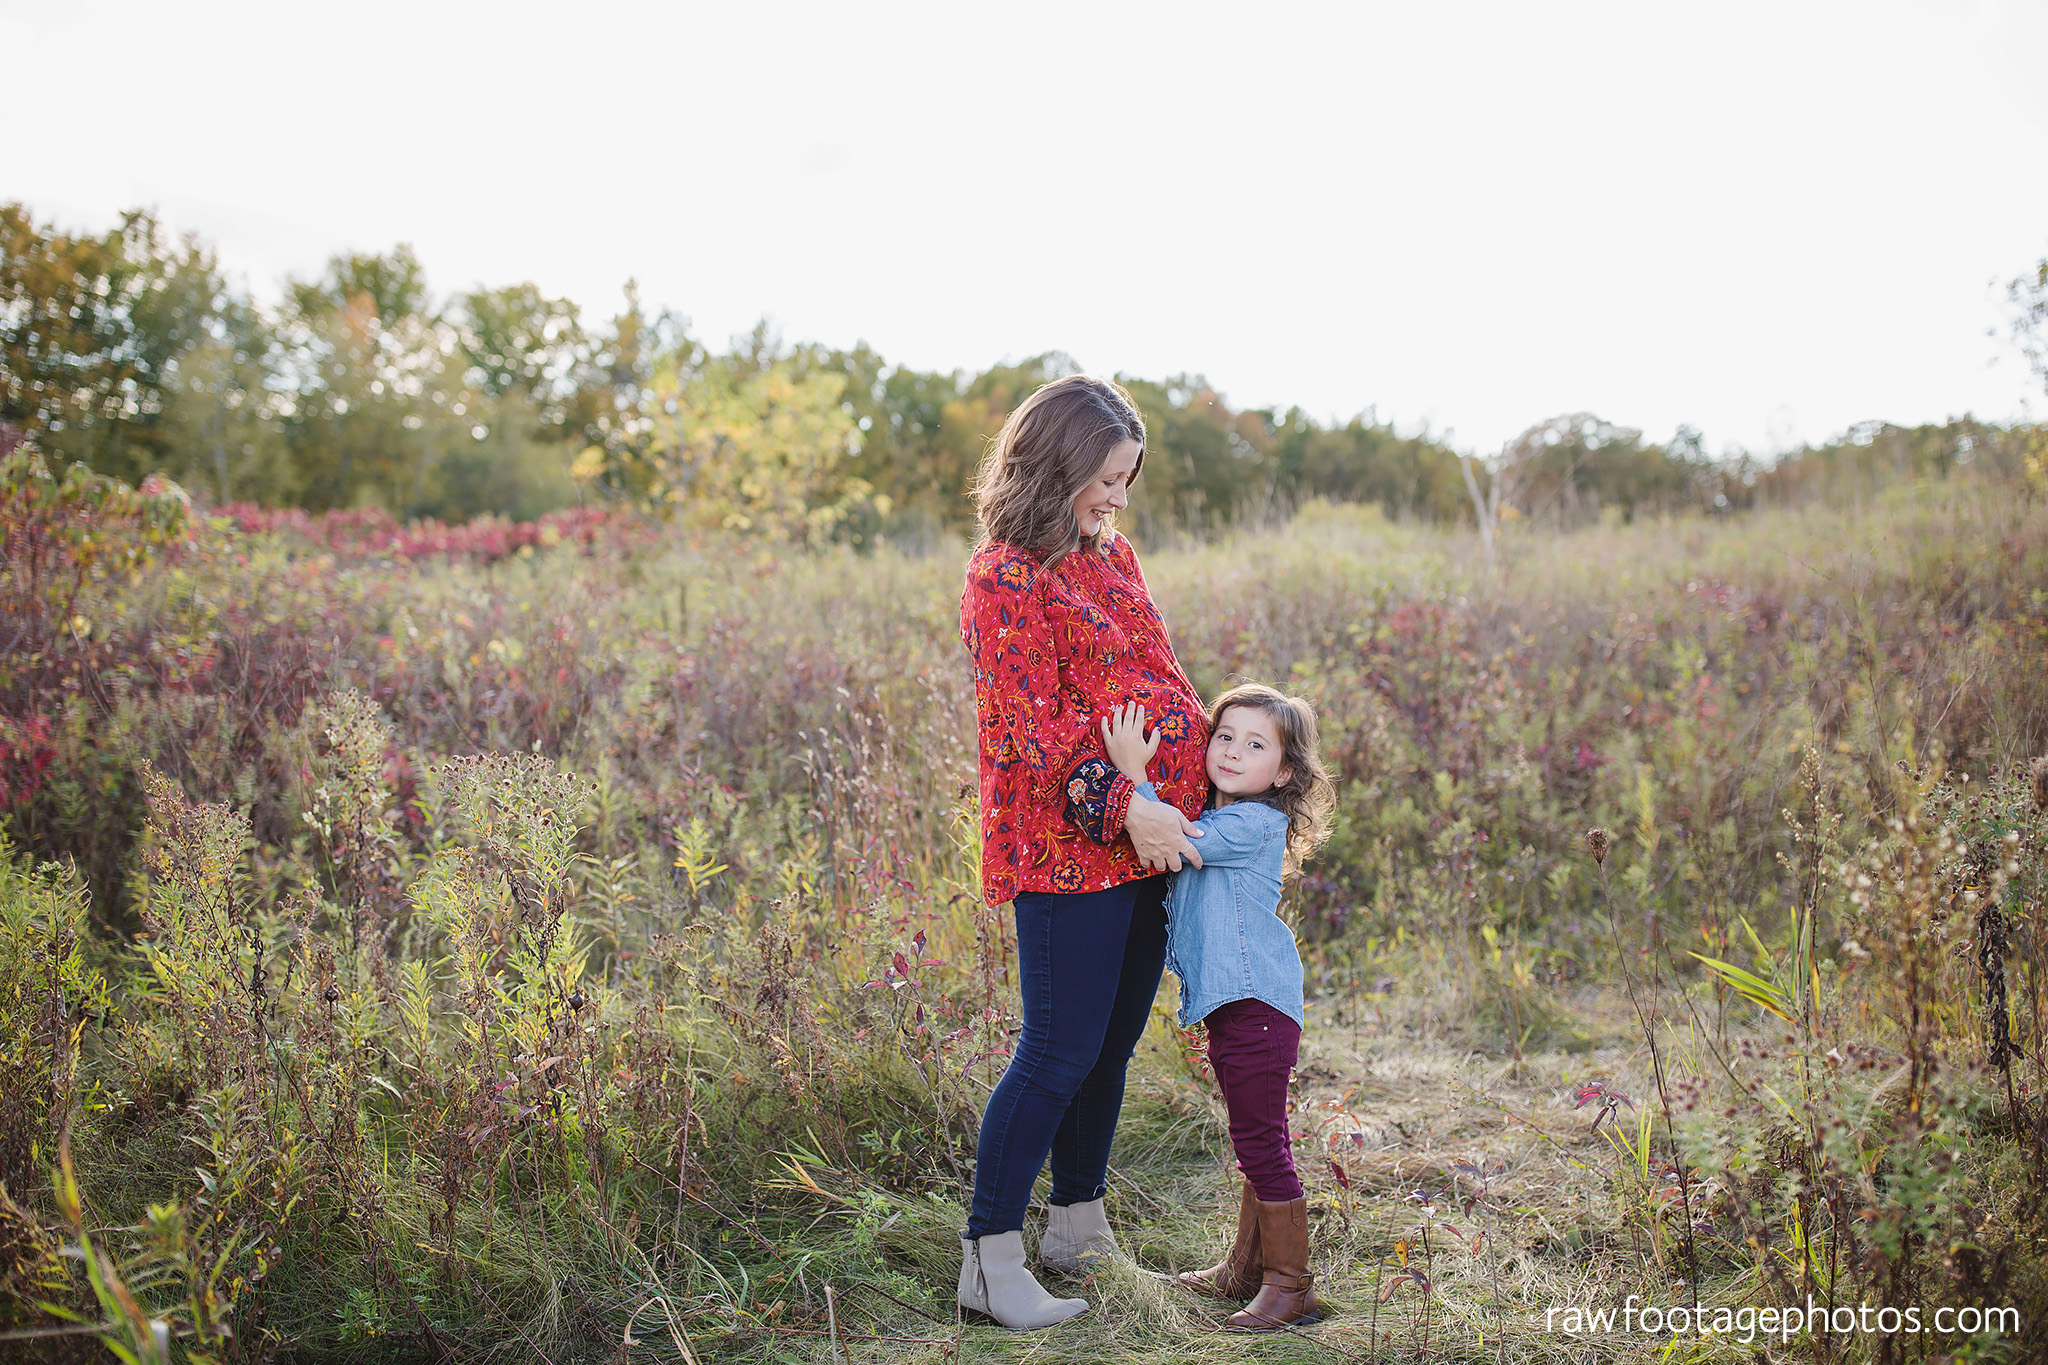 london_ontario_family_photographer-golden_hour_maternity_session-raw_footage_photography004.jpg